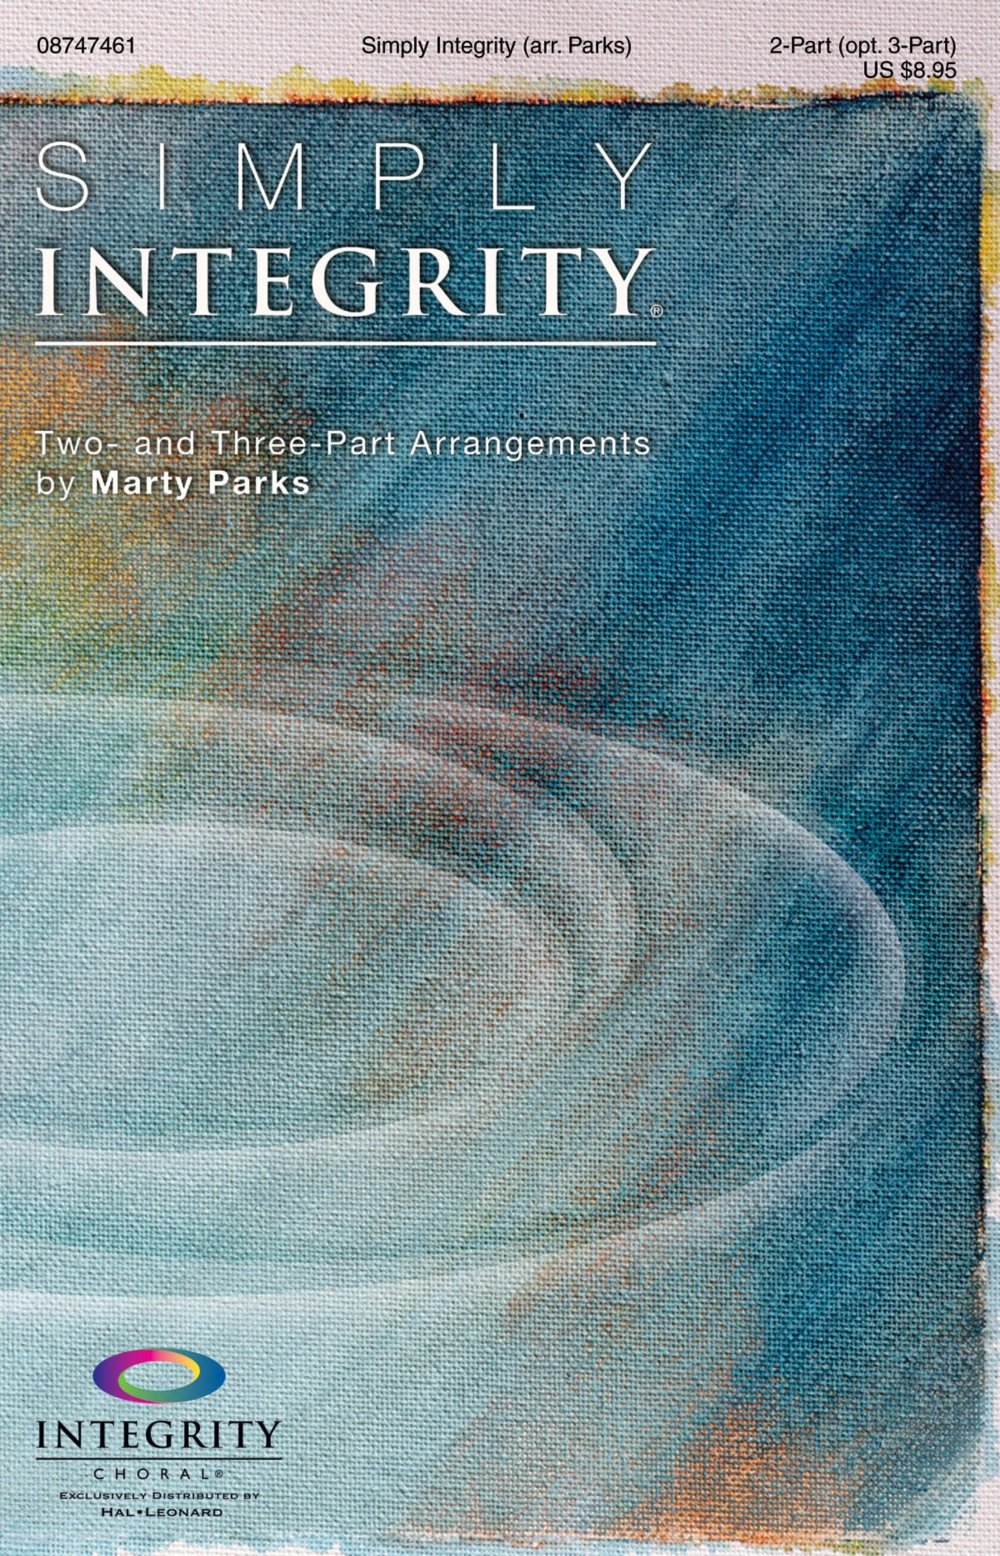 Read Online Integrity Choral Simply Integrity (Two- and Three-Part Arrangements) 2-Part (optional 3-Part) Arranged by Marty Parks PDF